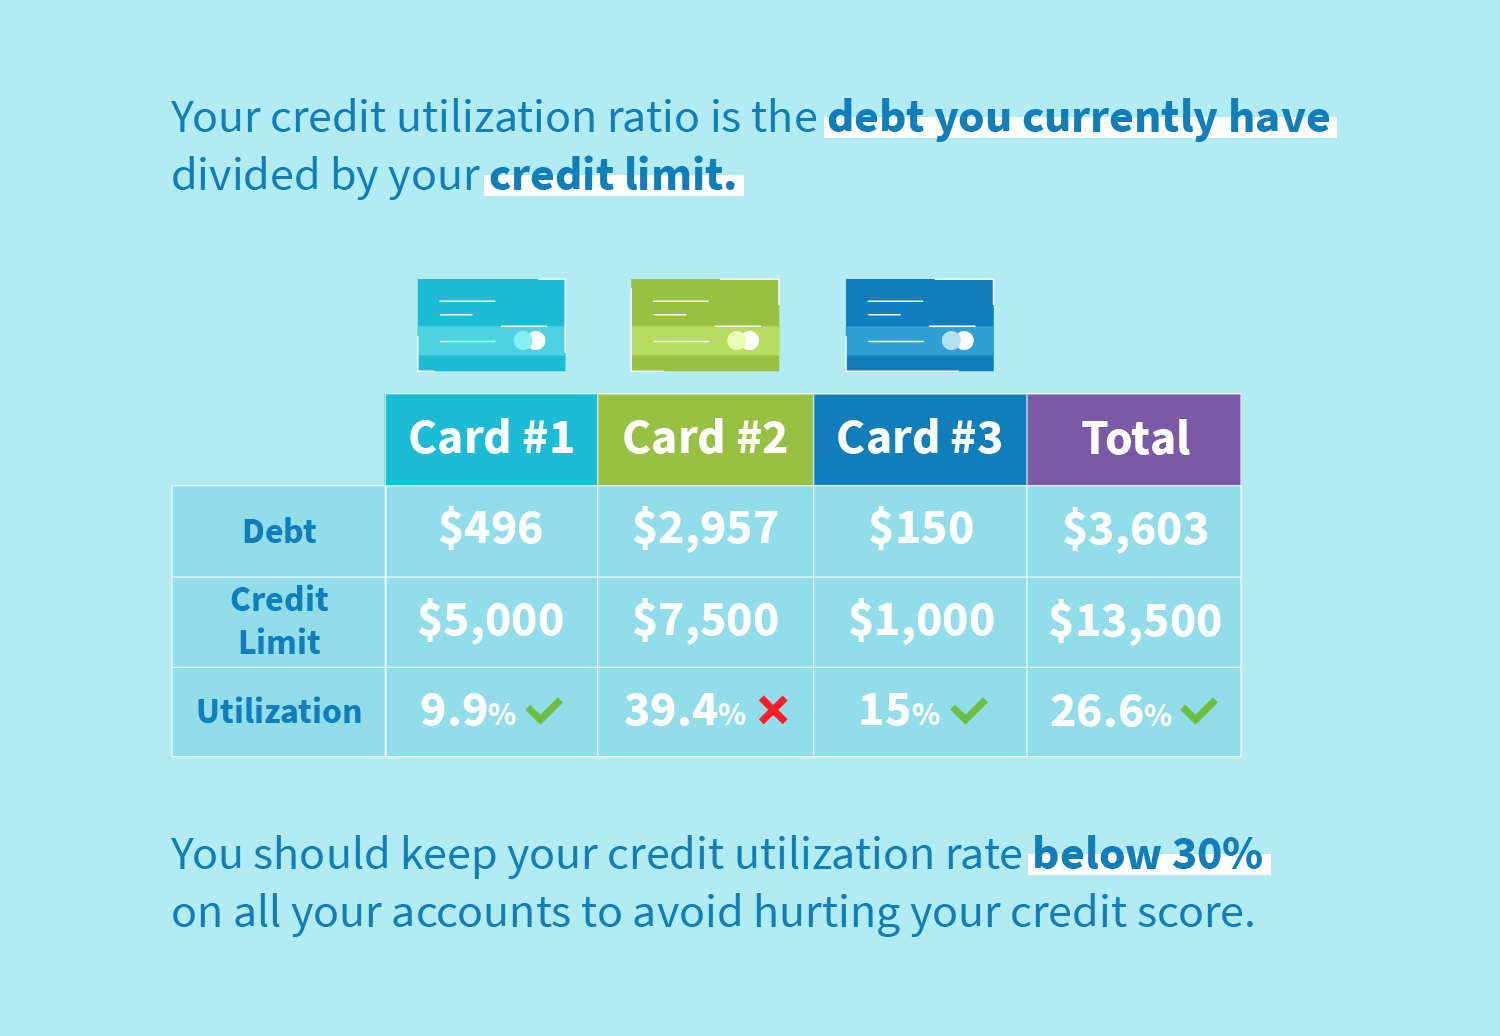 Your credit utilization ratio is the debt you currently have divided by your credit limit